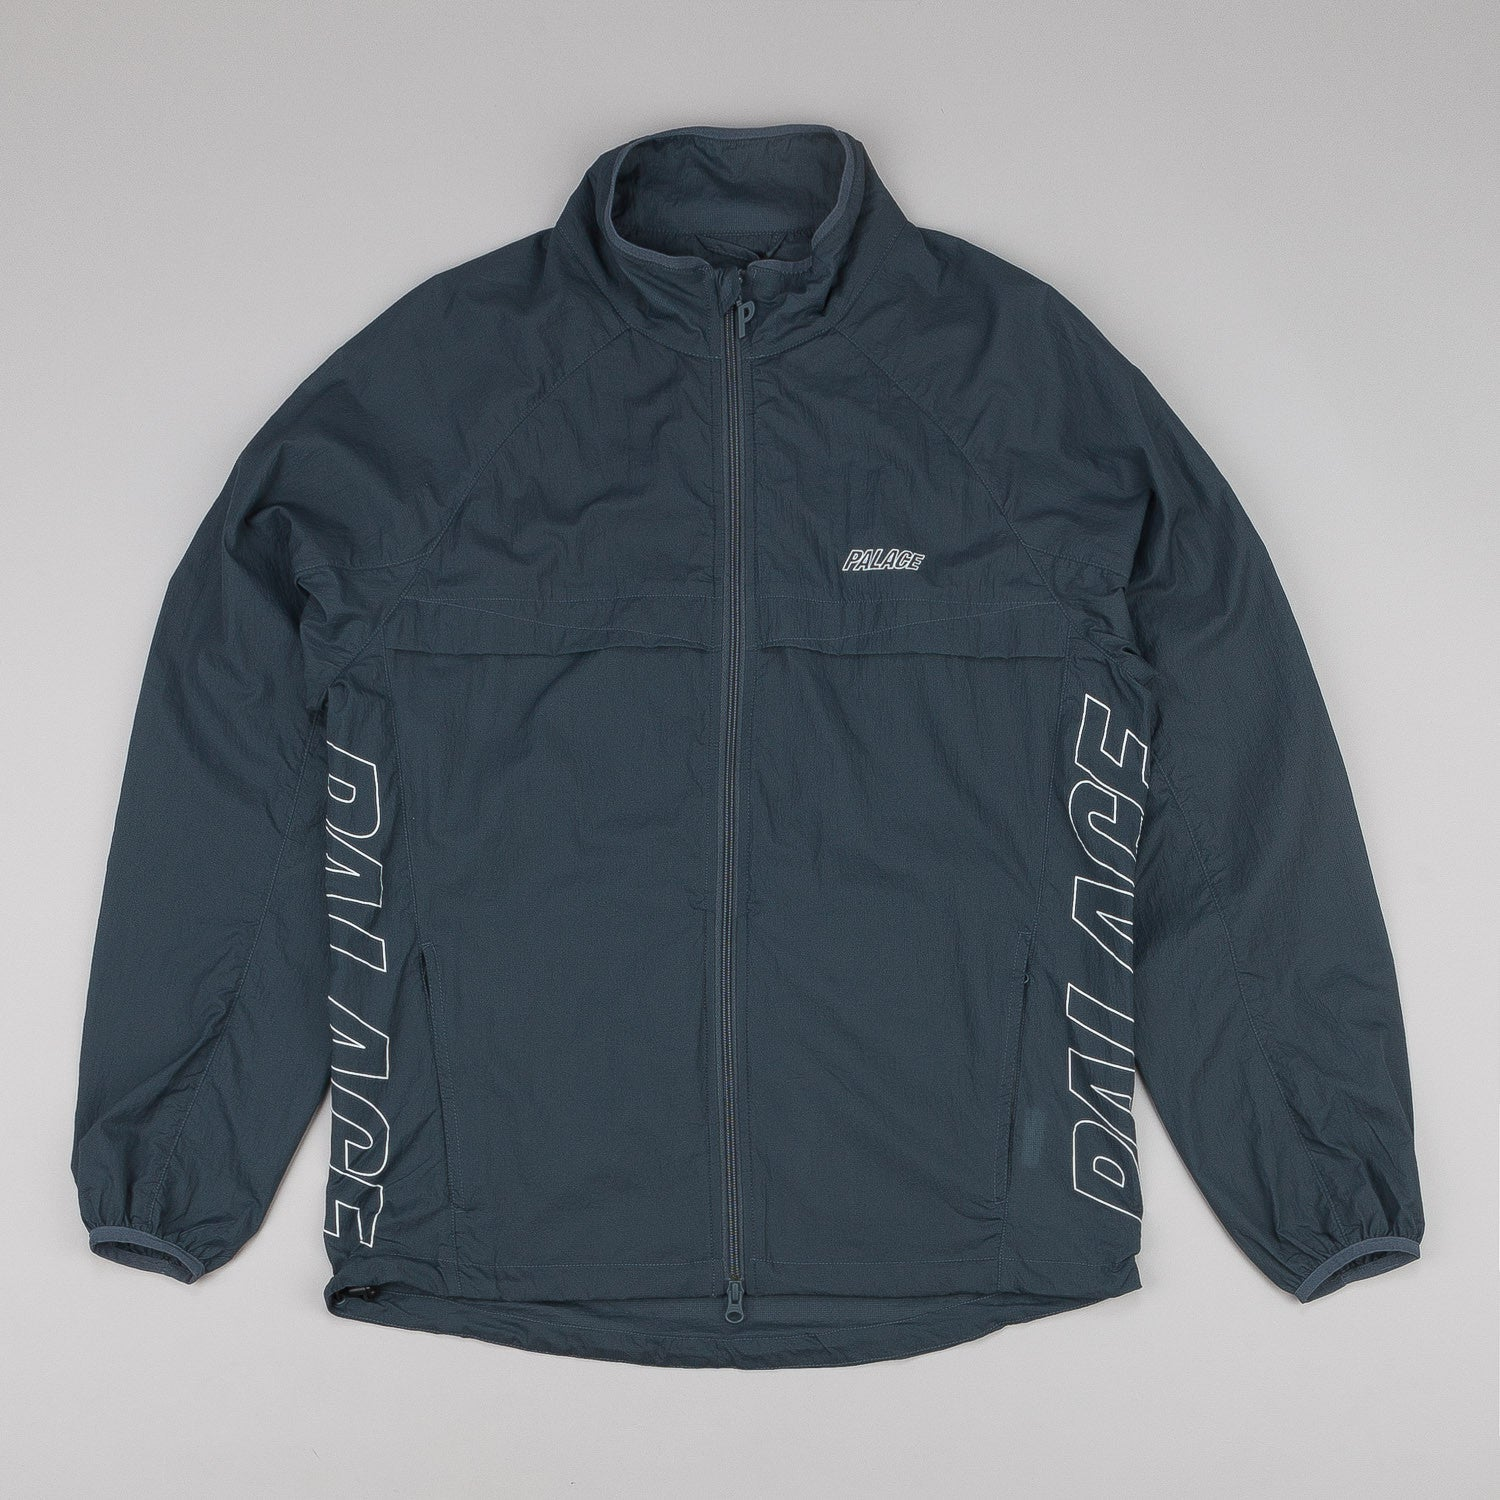 Palace Running Jacket